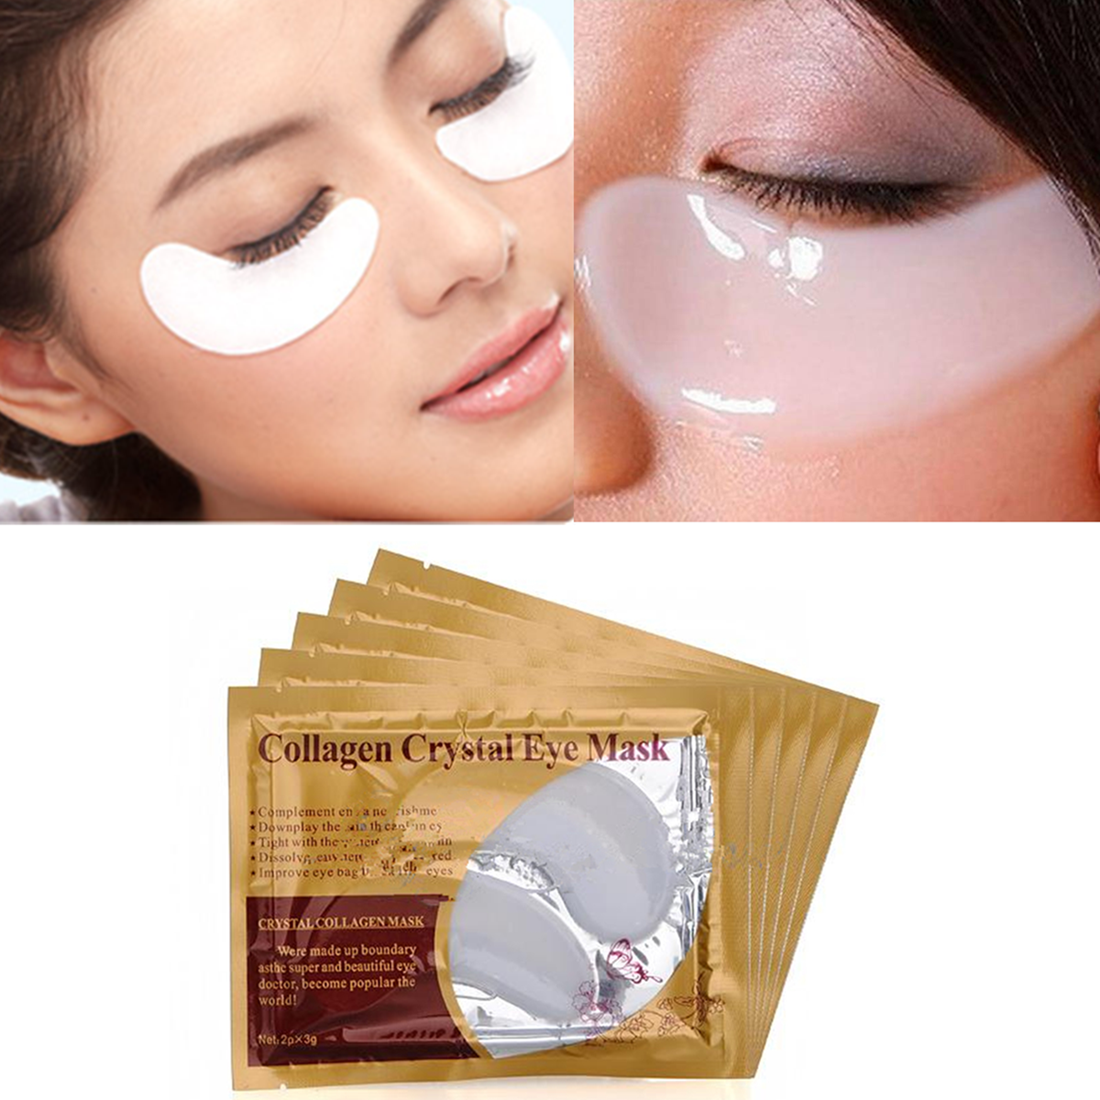 collagen crystal eye bag mask how to use